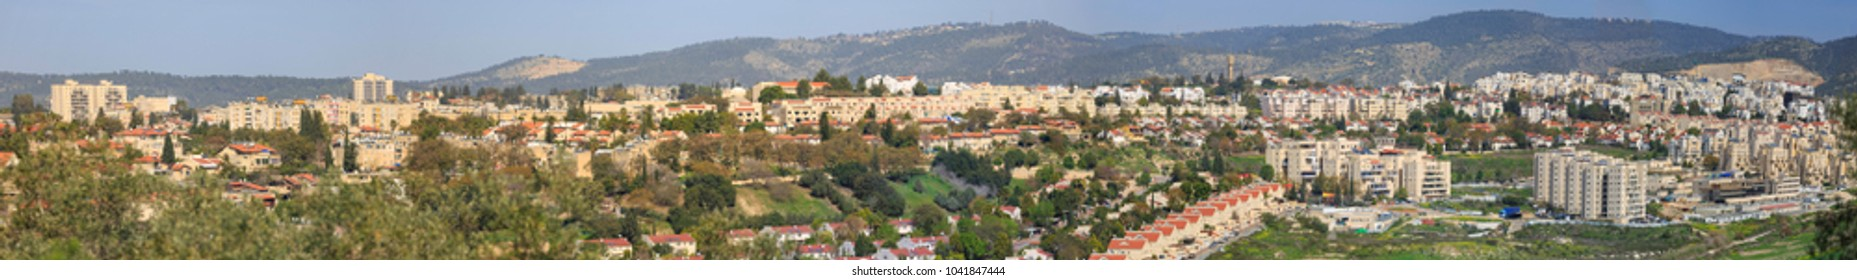 Wery wide panorama south side of Beit Shemesh city